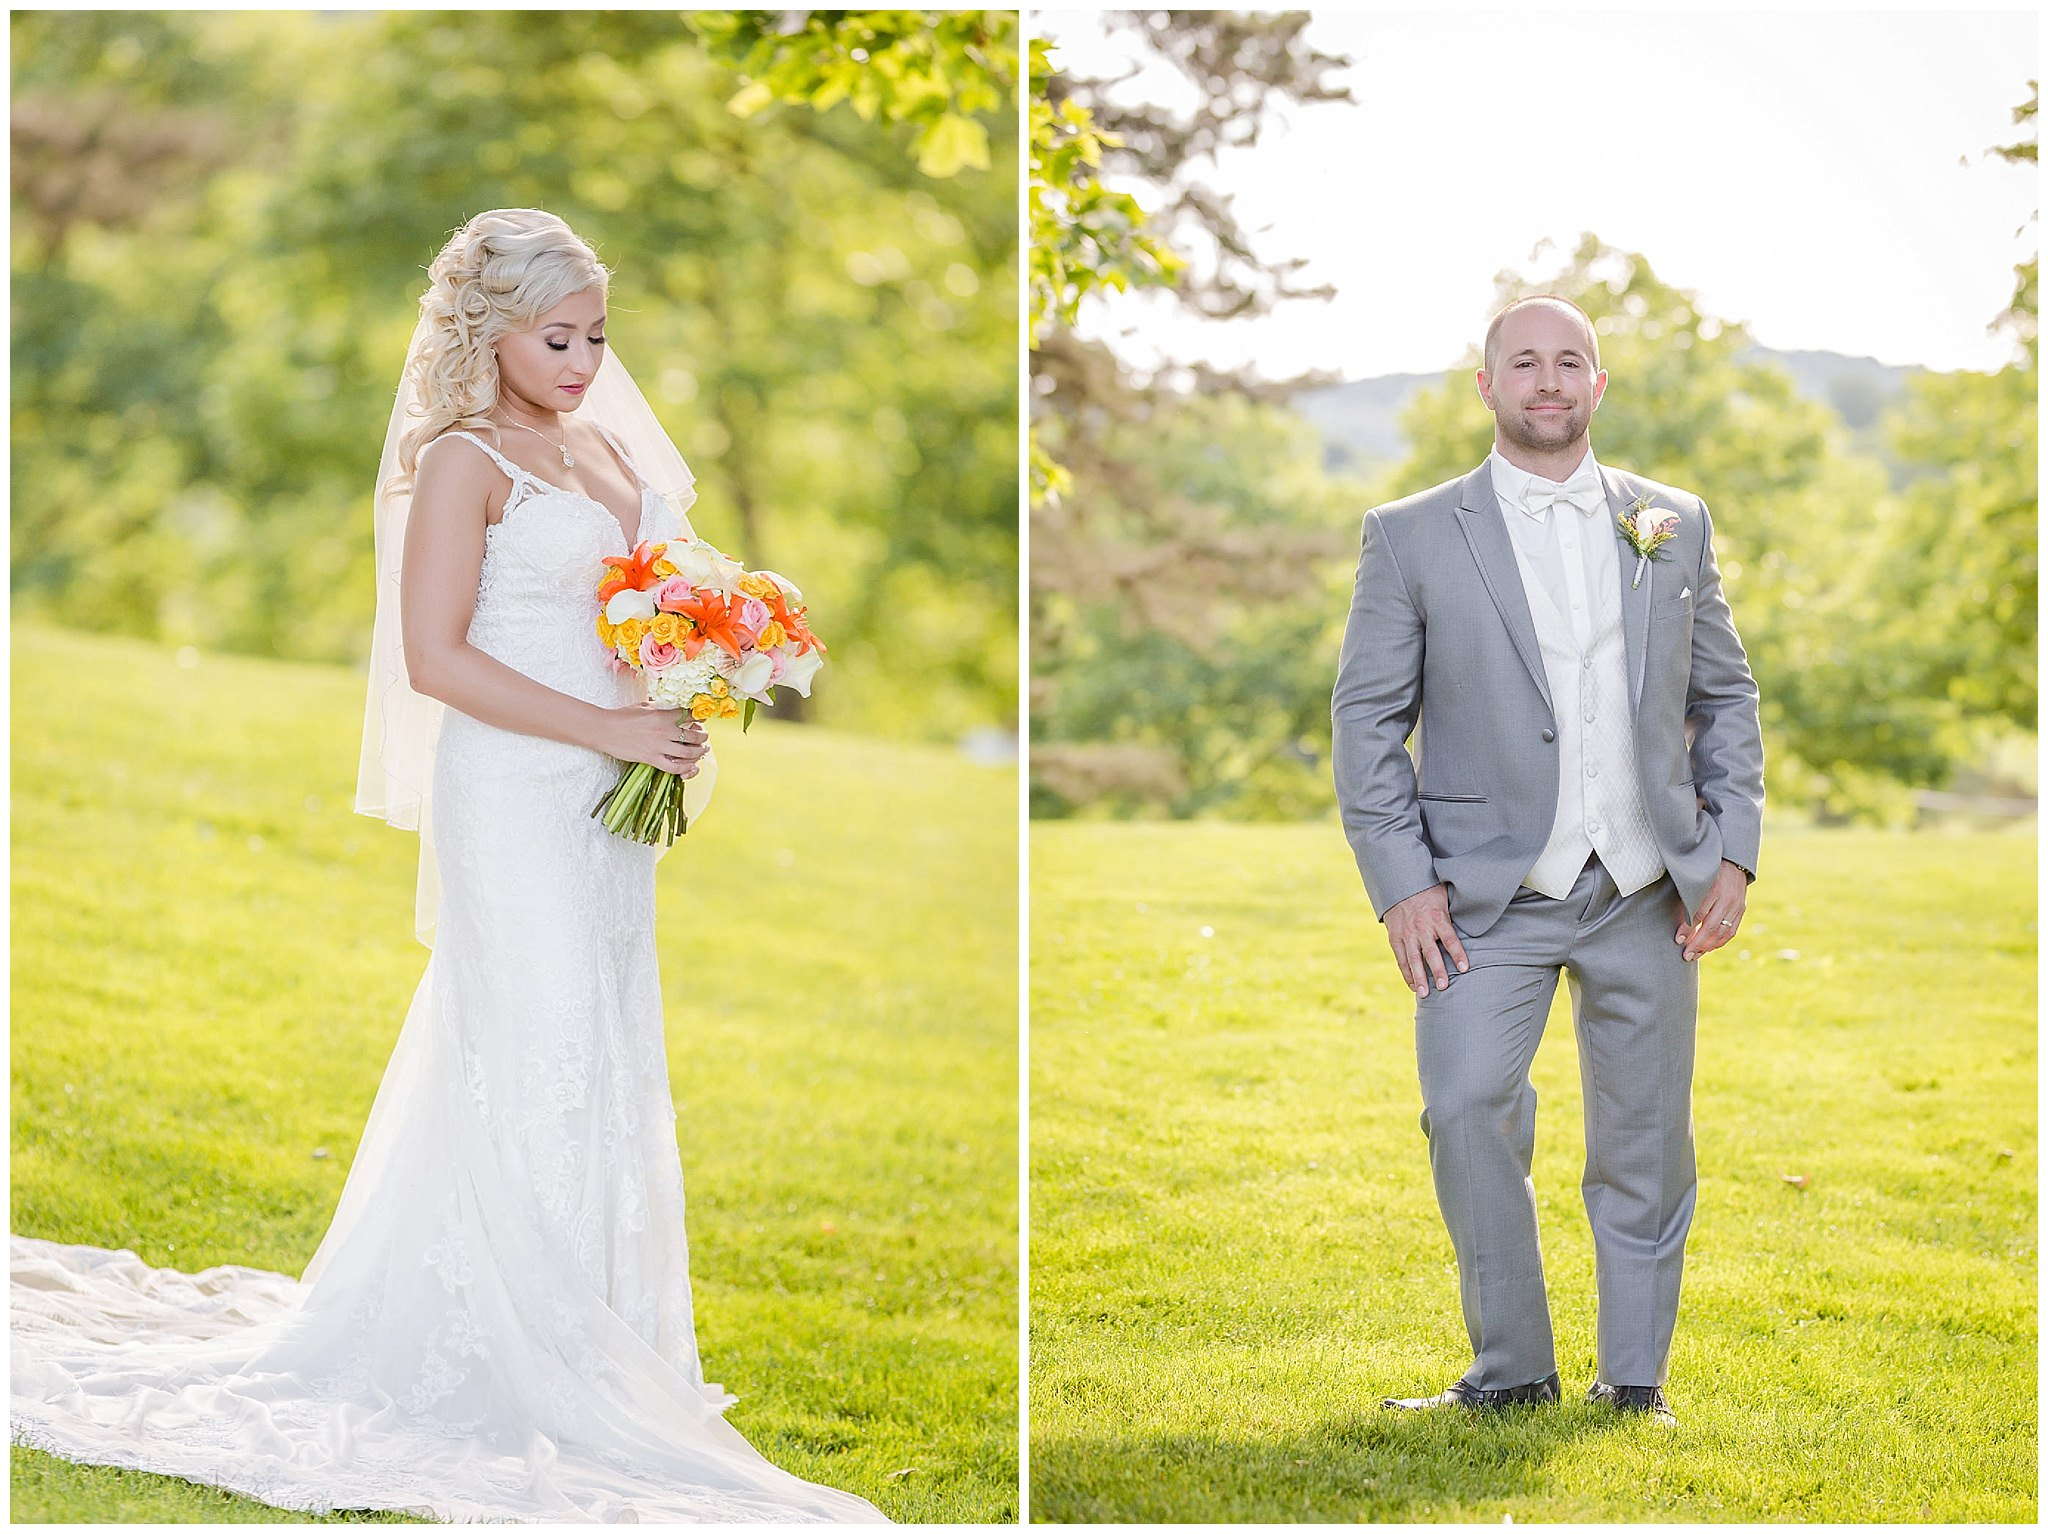 Bride and groom portraits in the grass